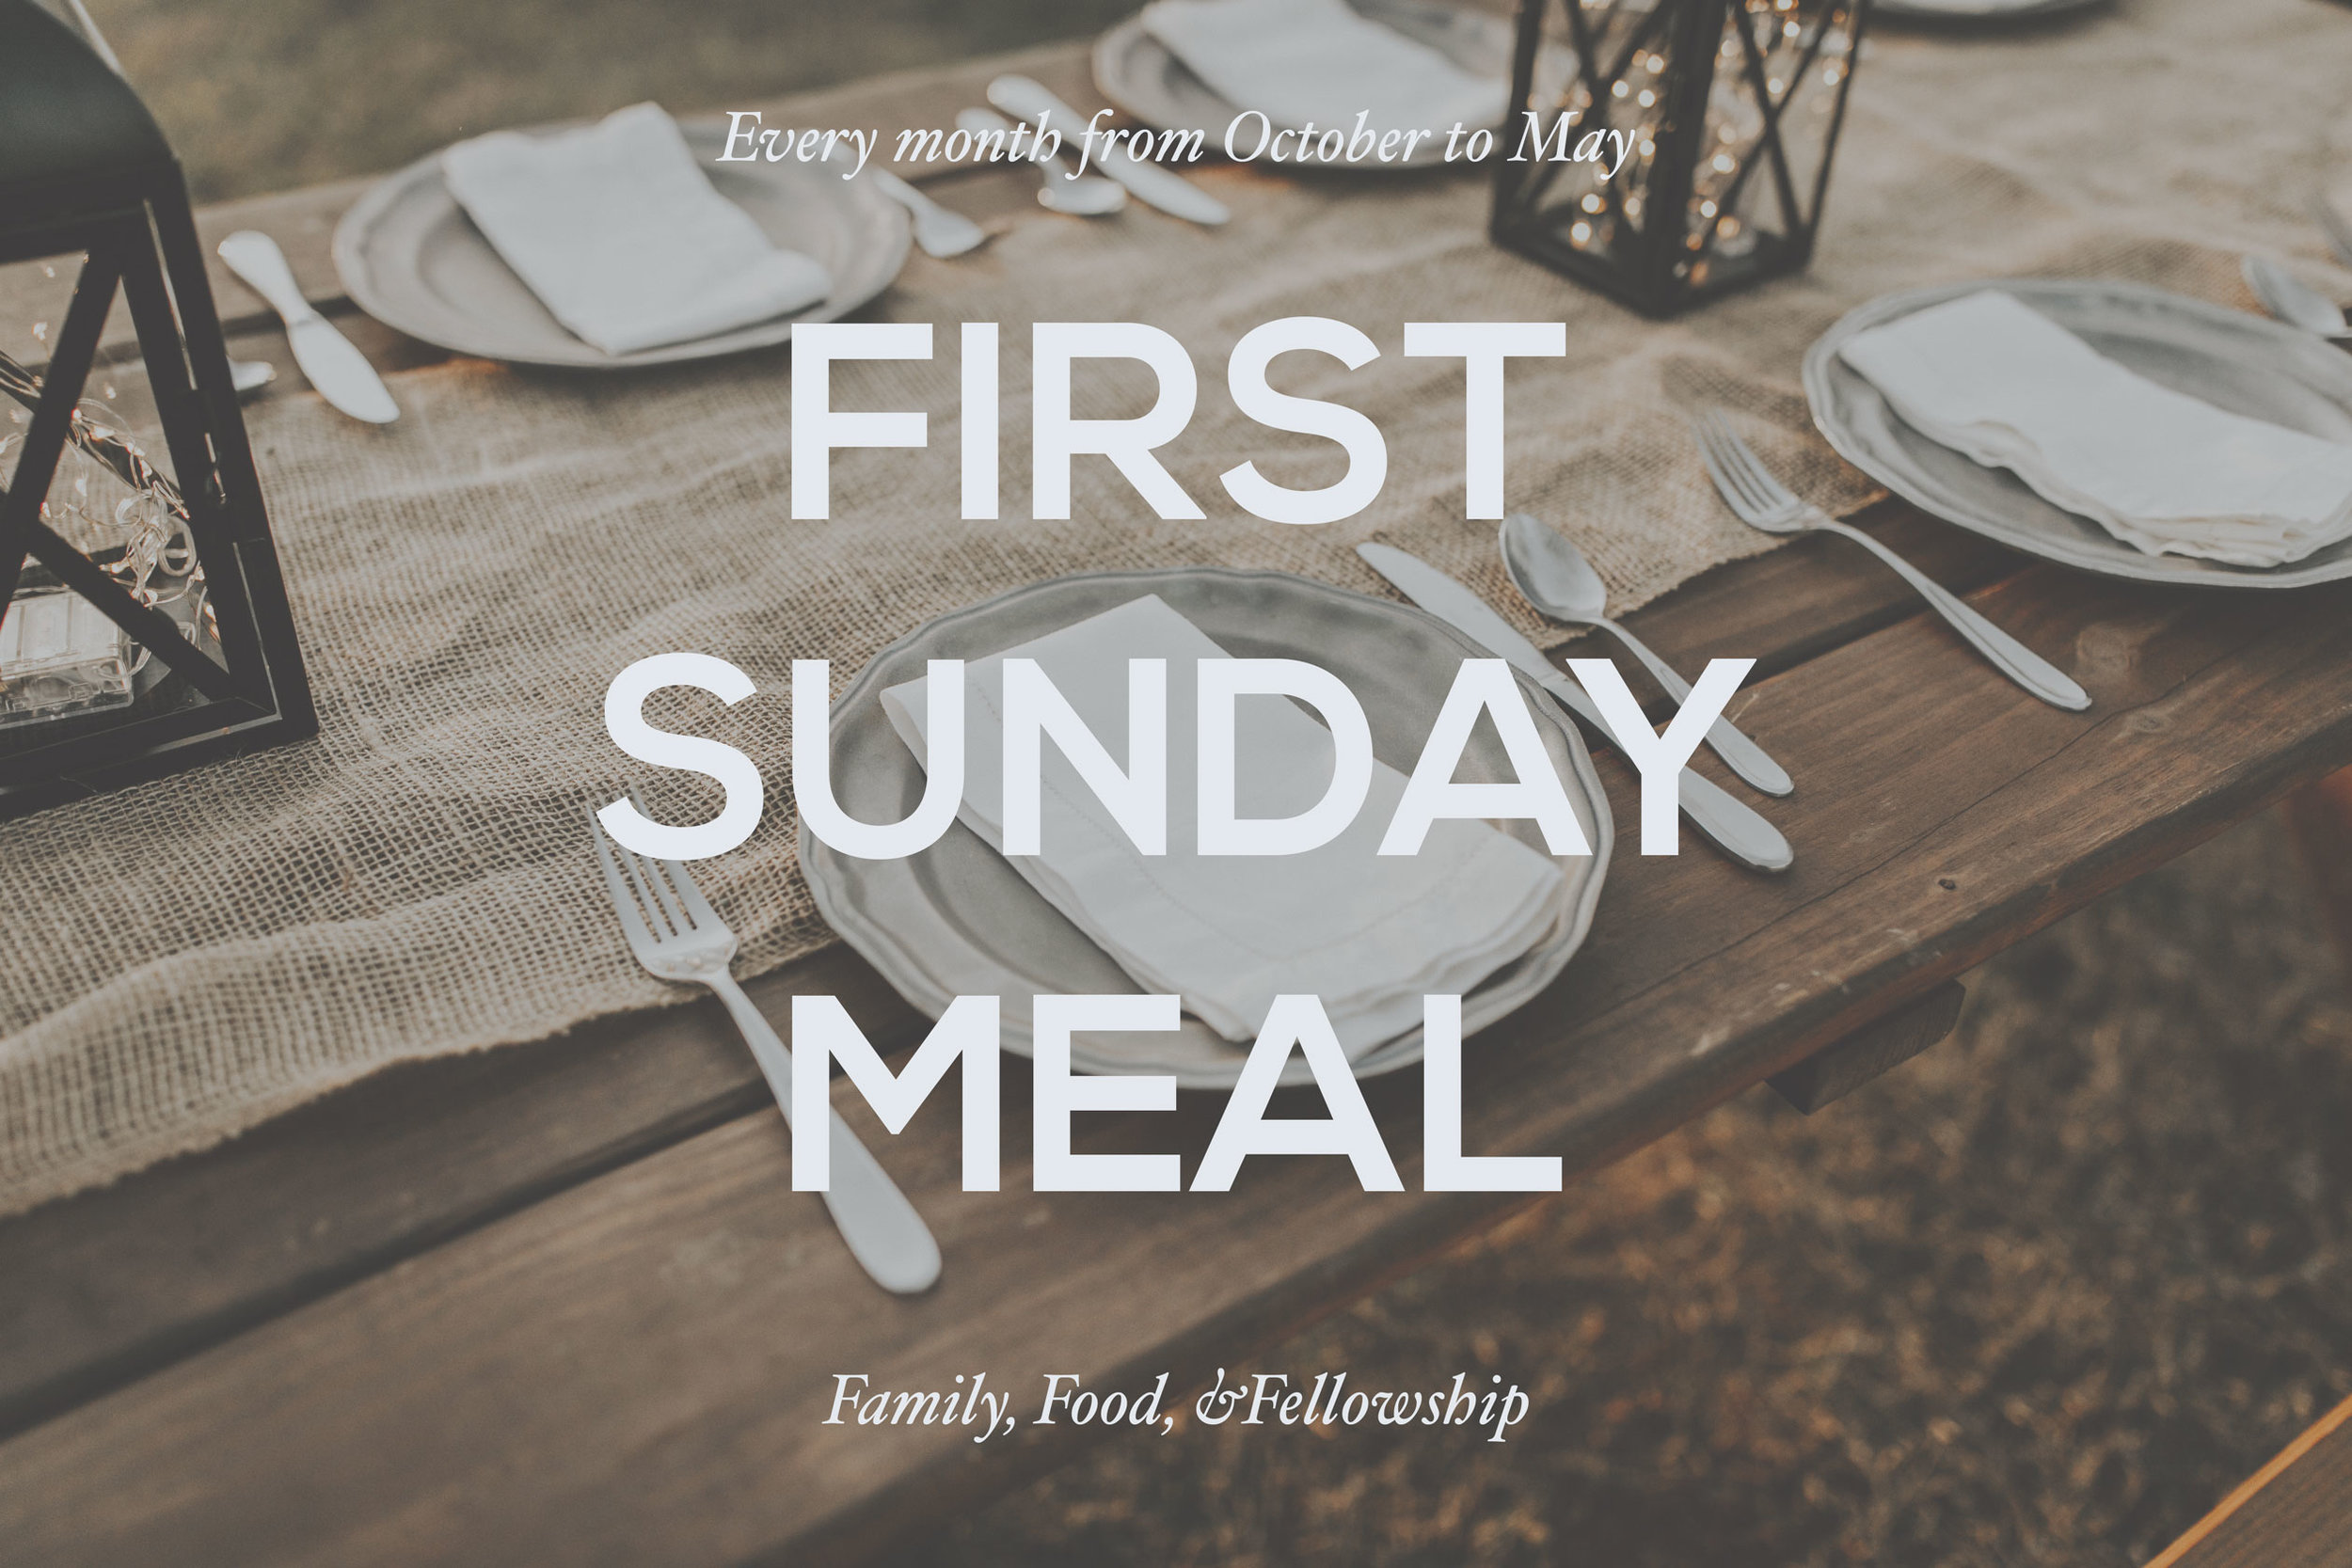 First Sunday Meal